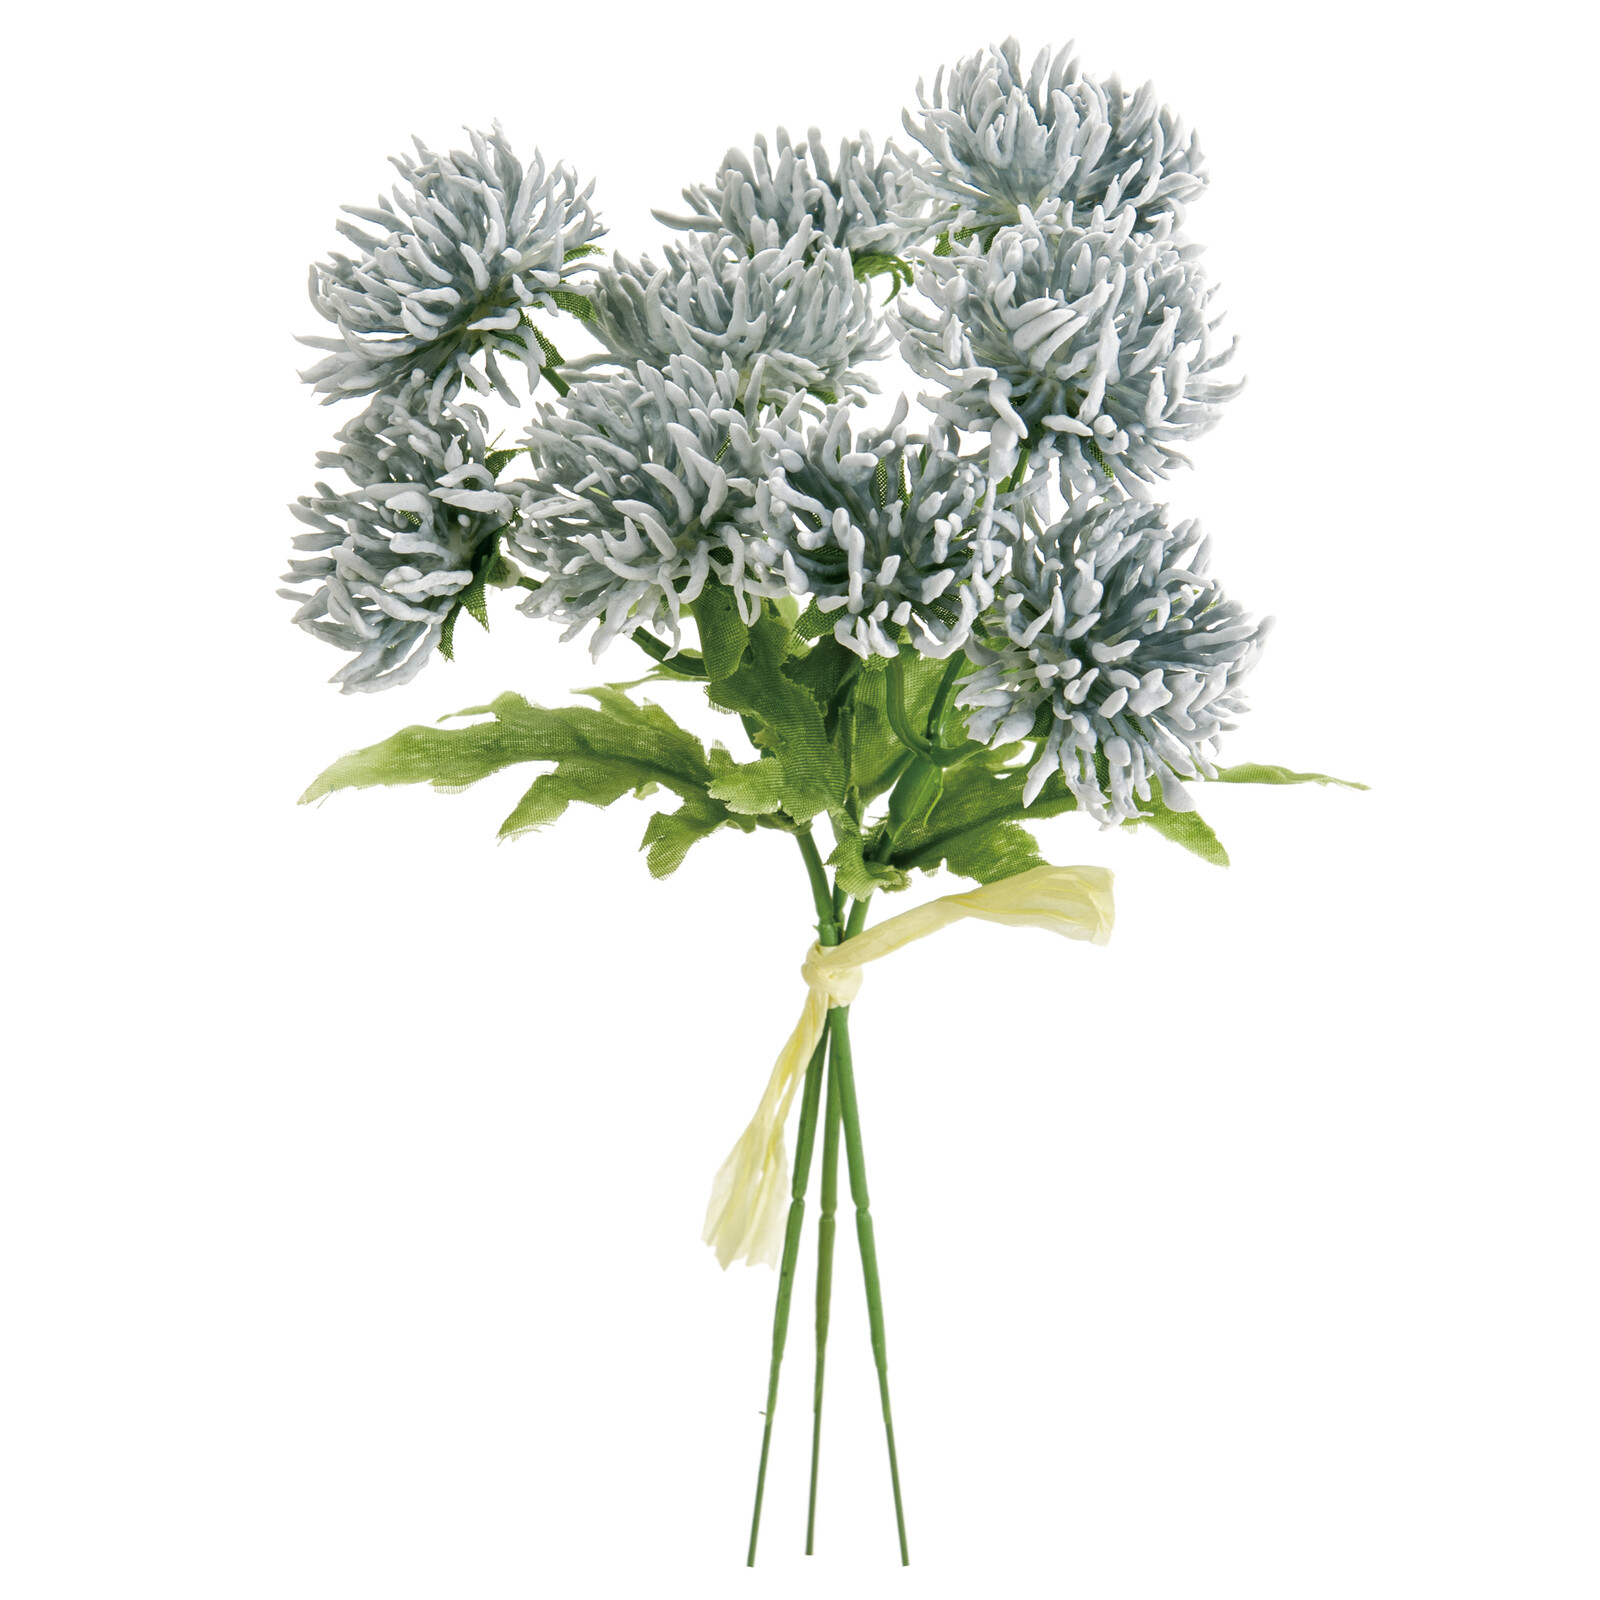 Broom Pick Light Blue Flower Artificial Flower Export Japanese Products To The World At Wholesale Prices Super Delivery